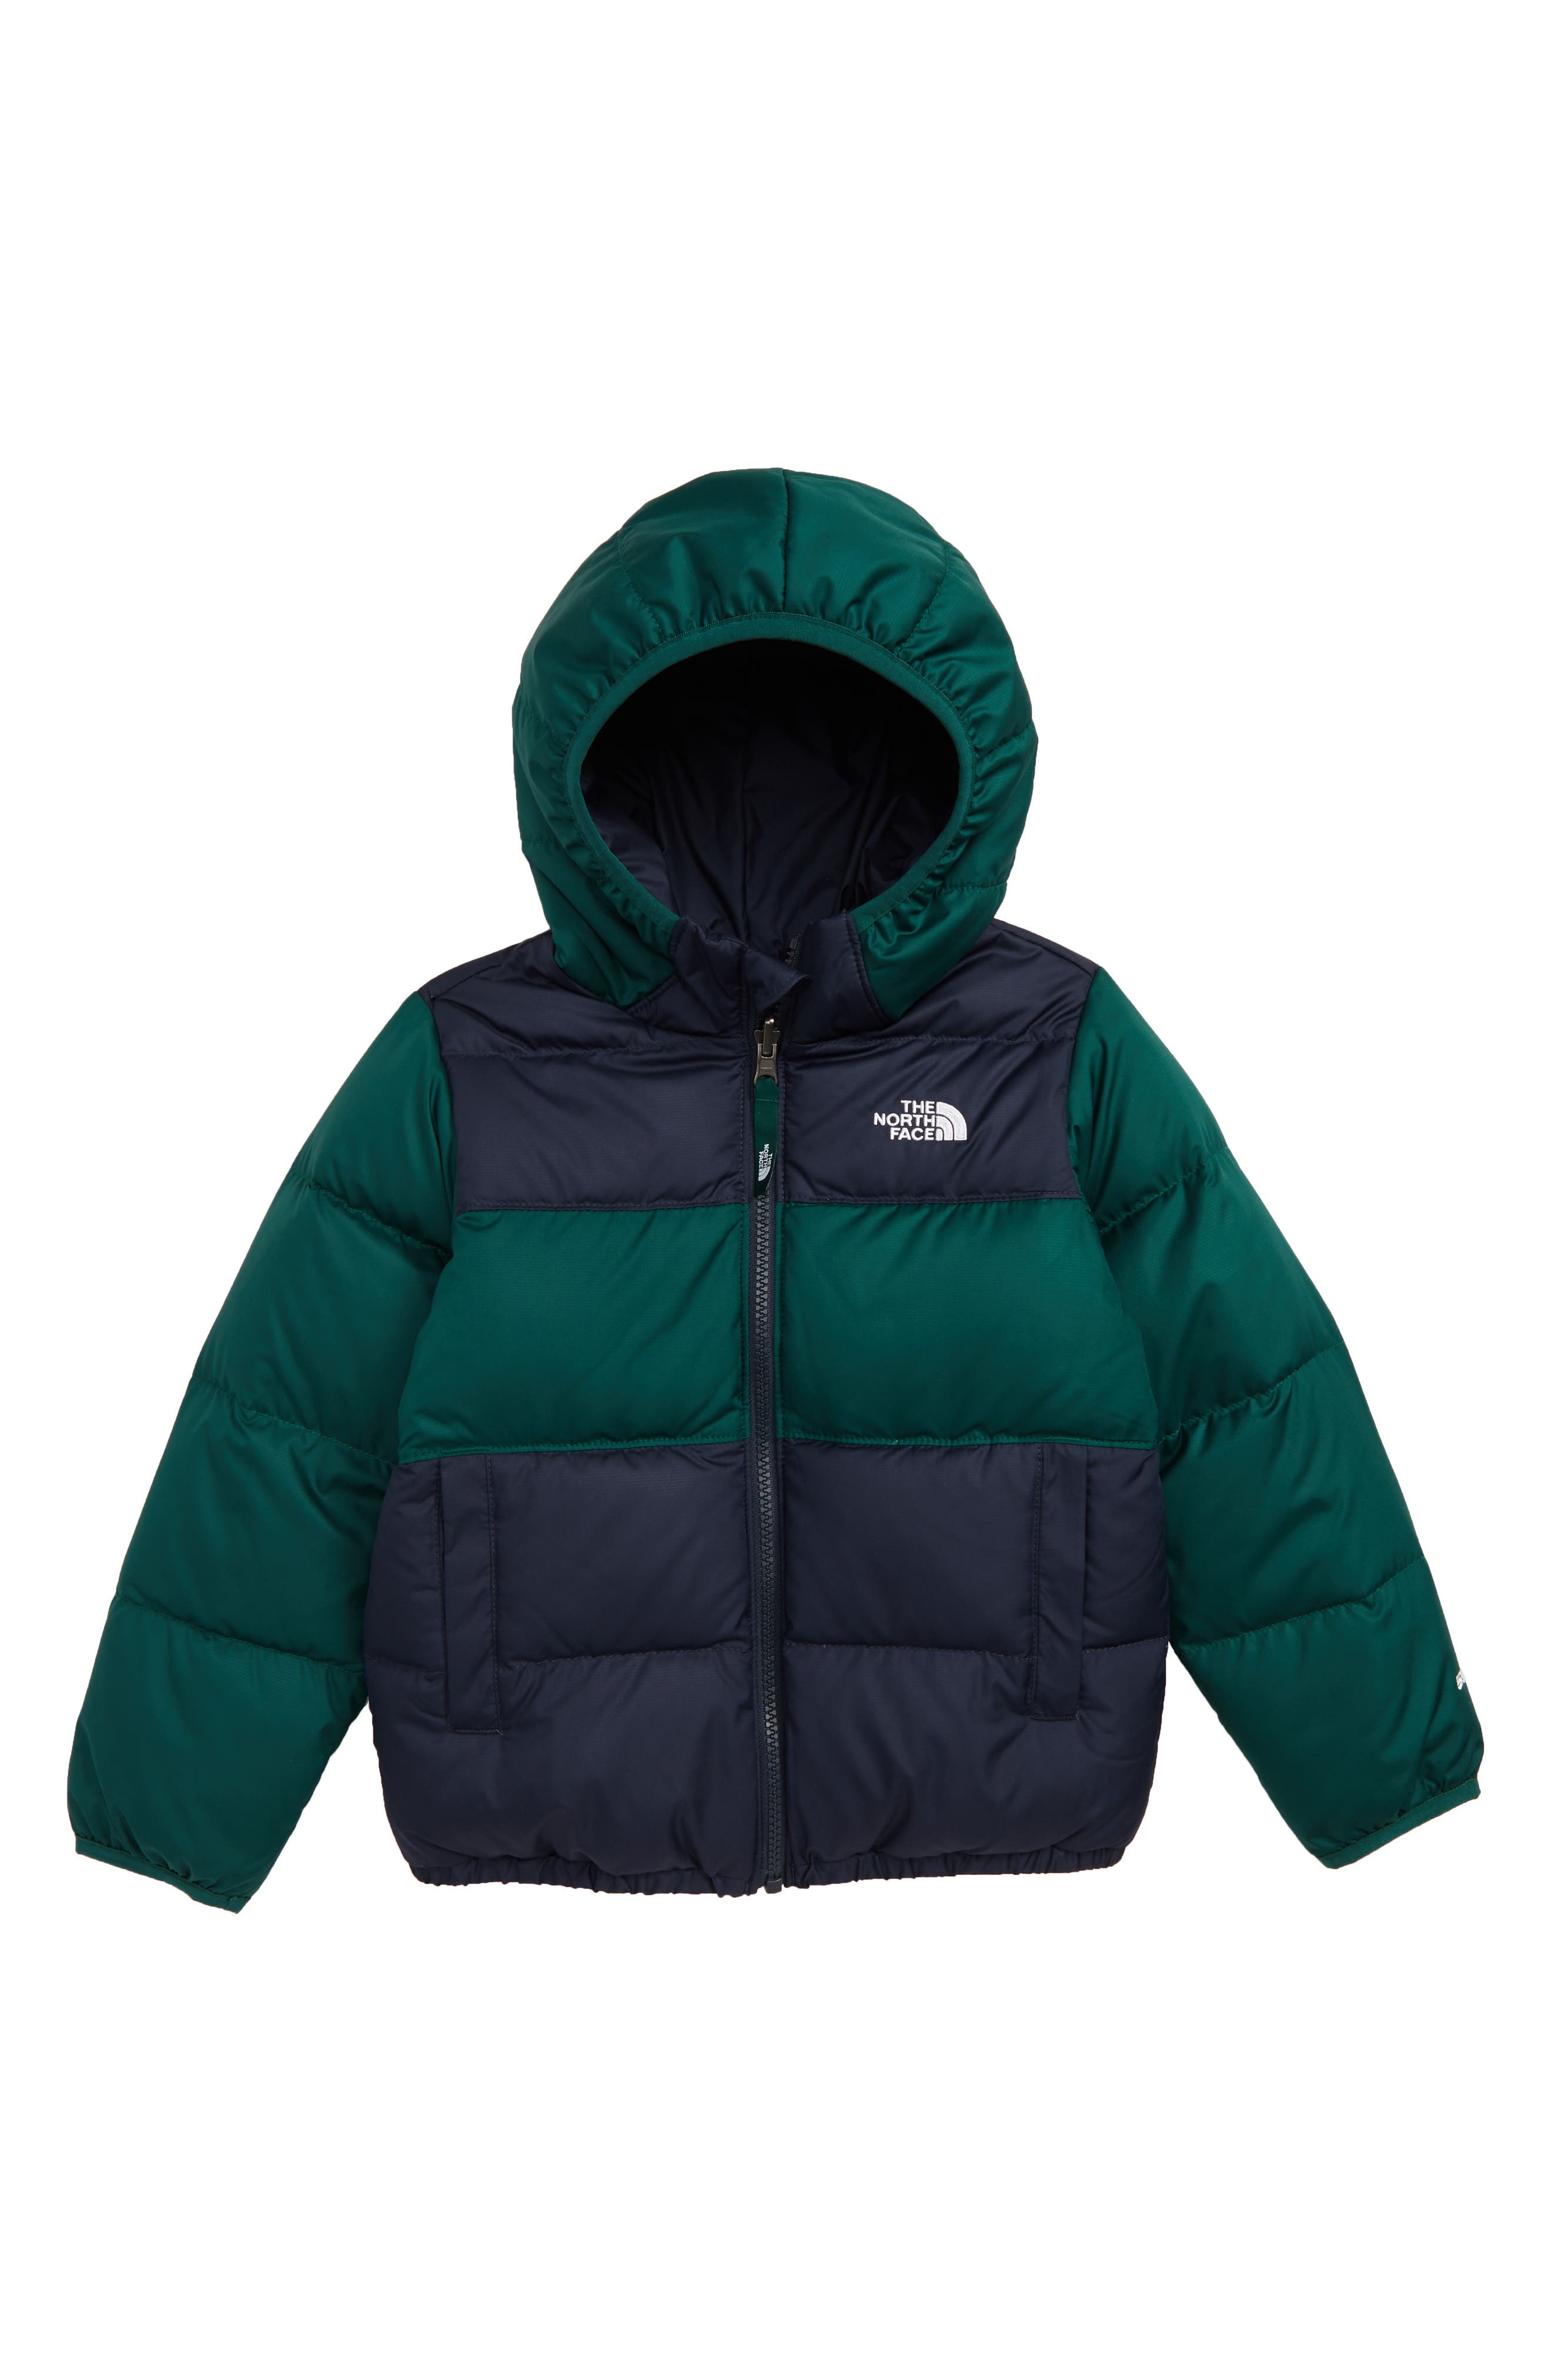 Toddler Boys The North Face Moondoggy Water Repellent Reversible Down Jacket Size 6T  Blue